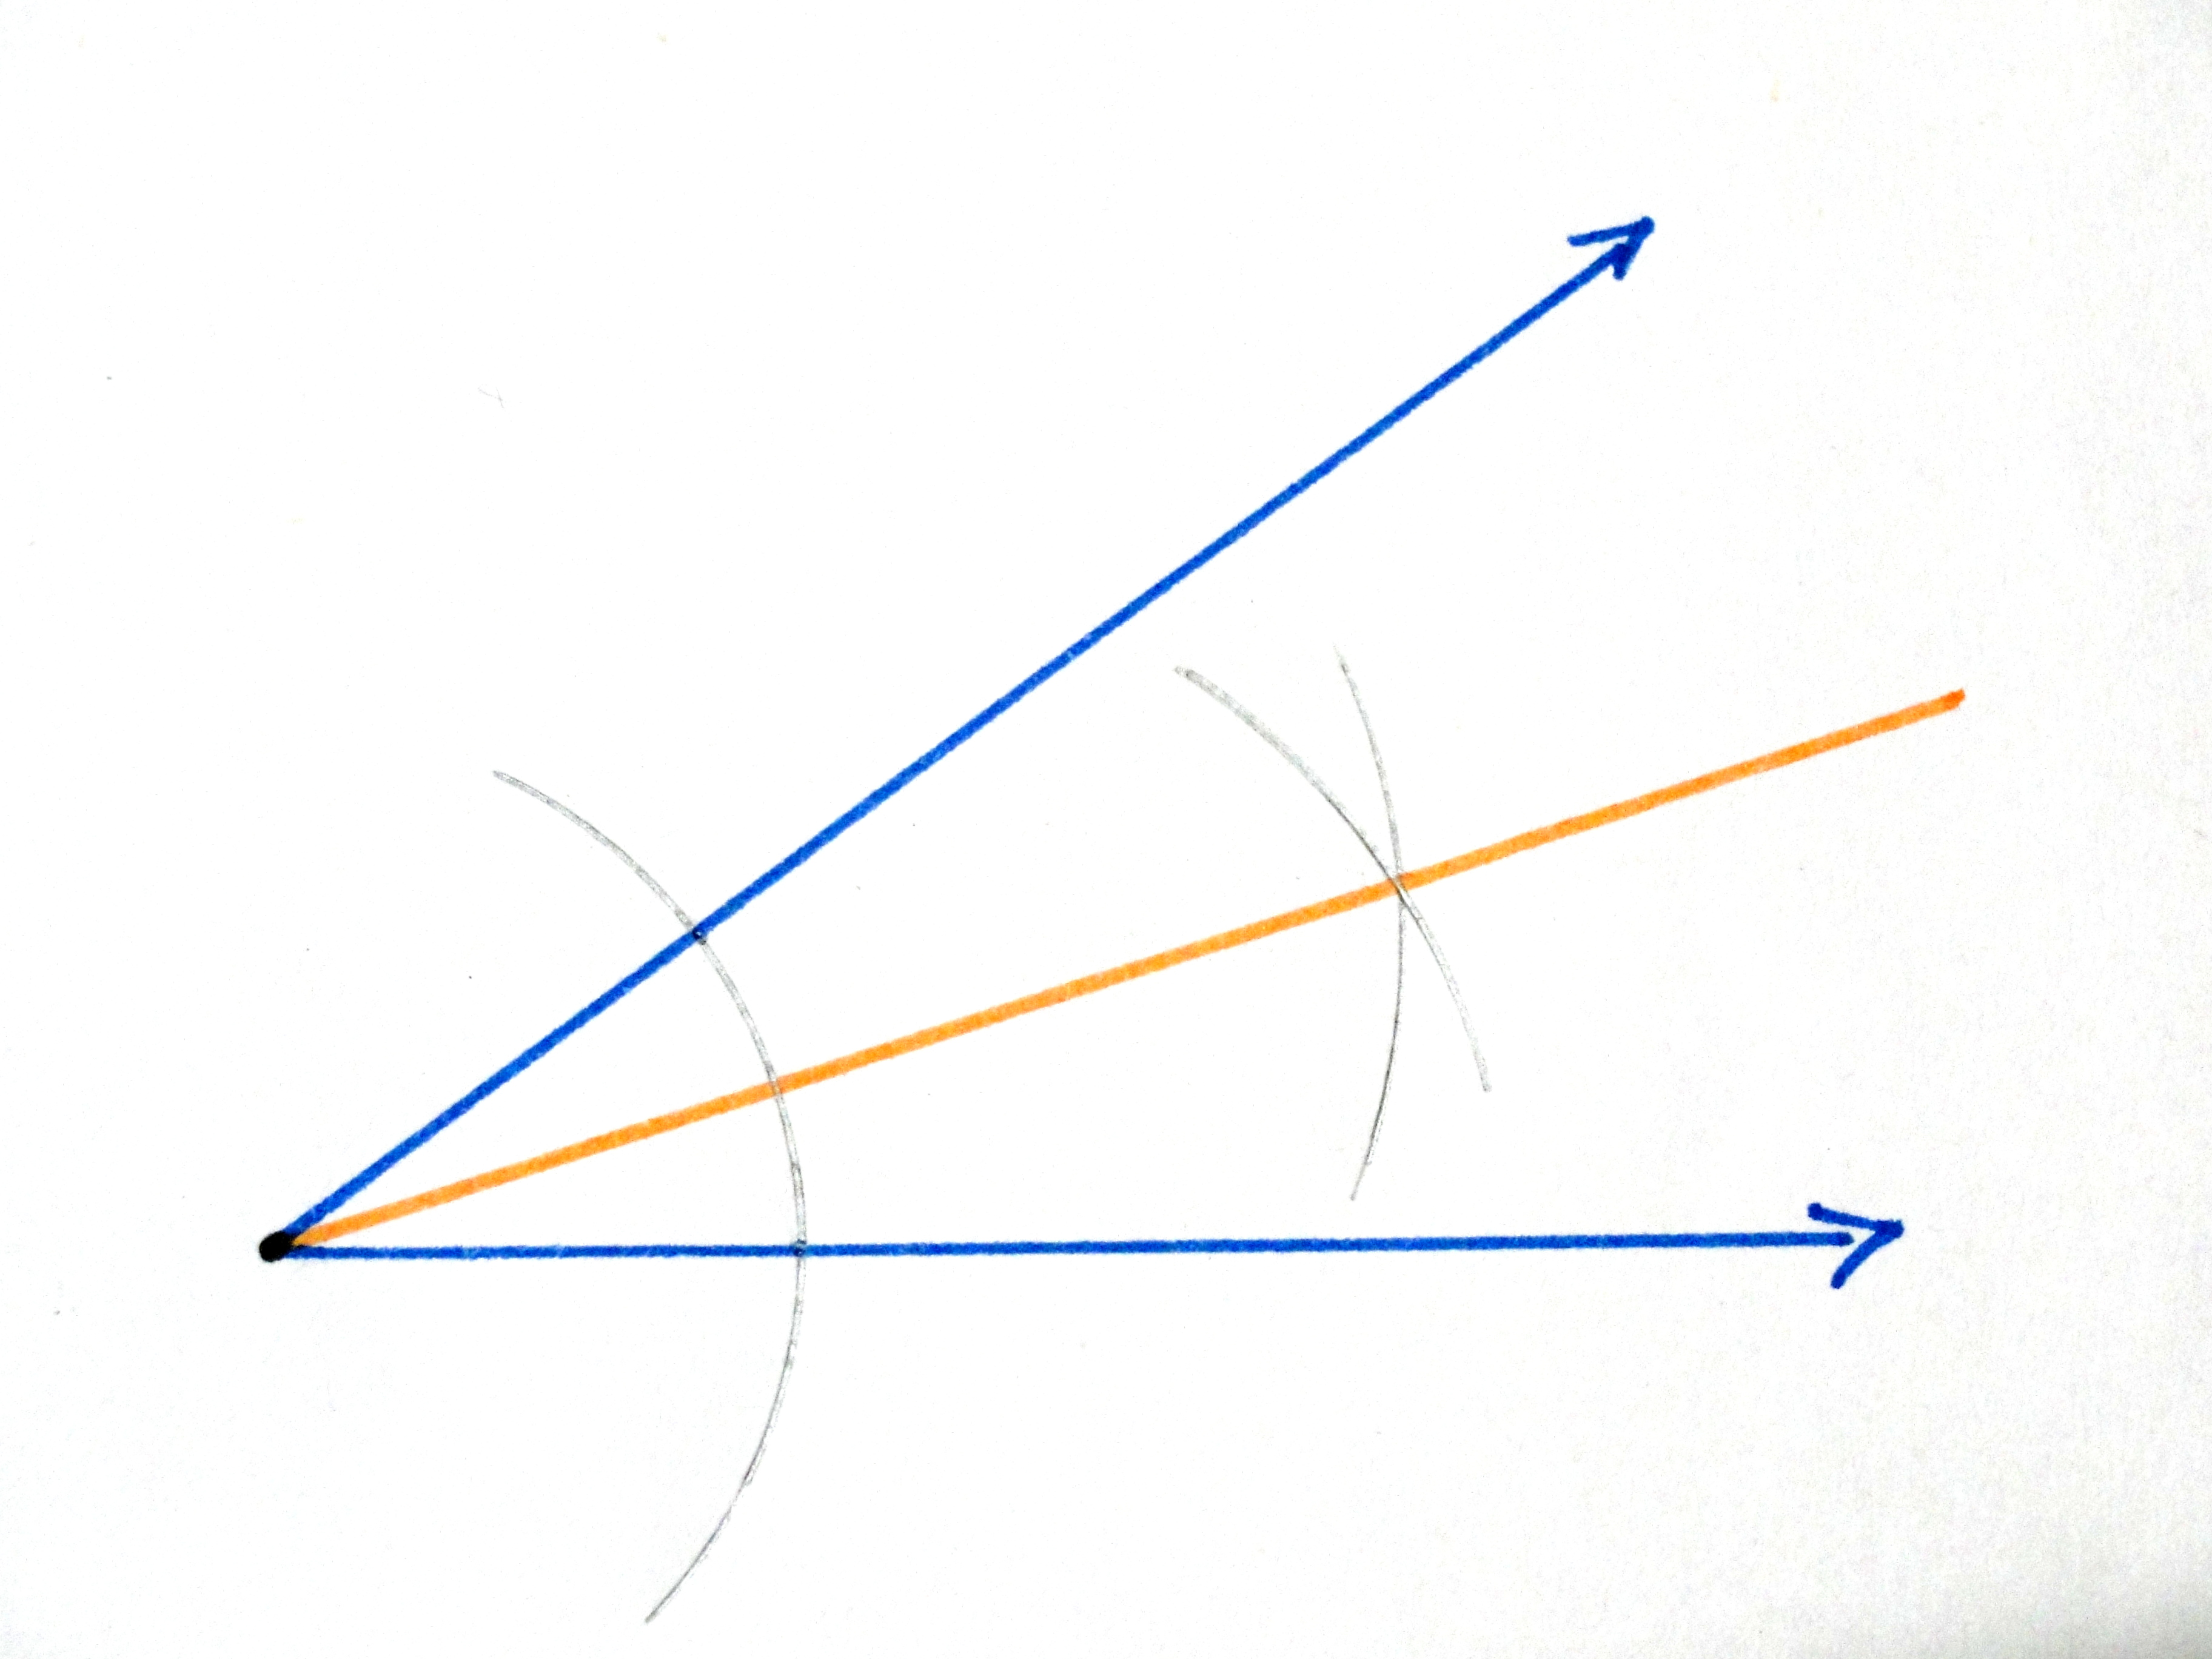 Construct Construct The Angle Bisector